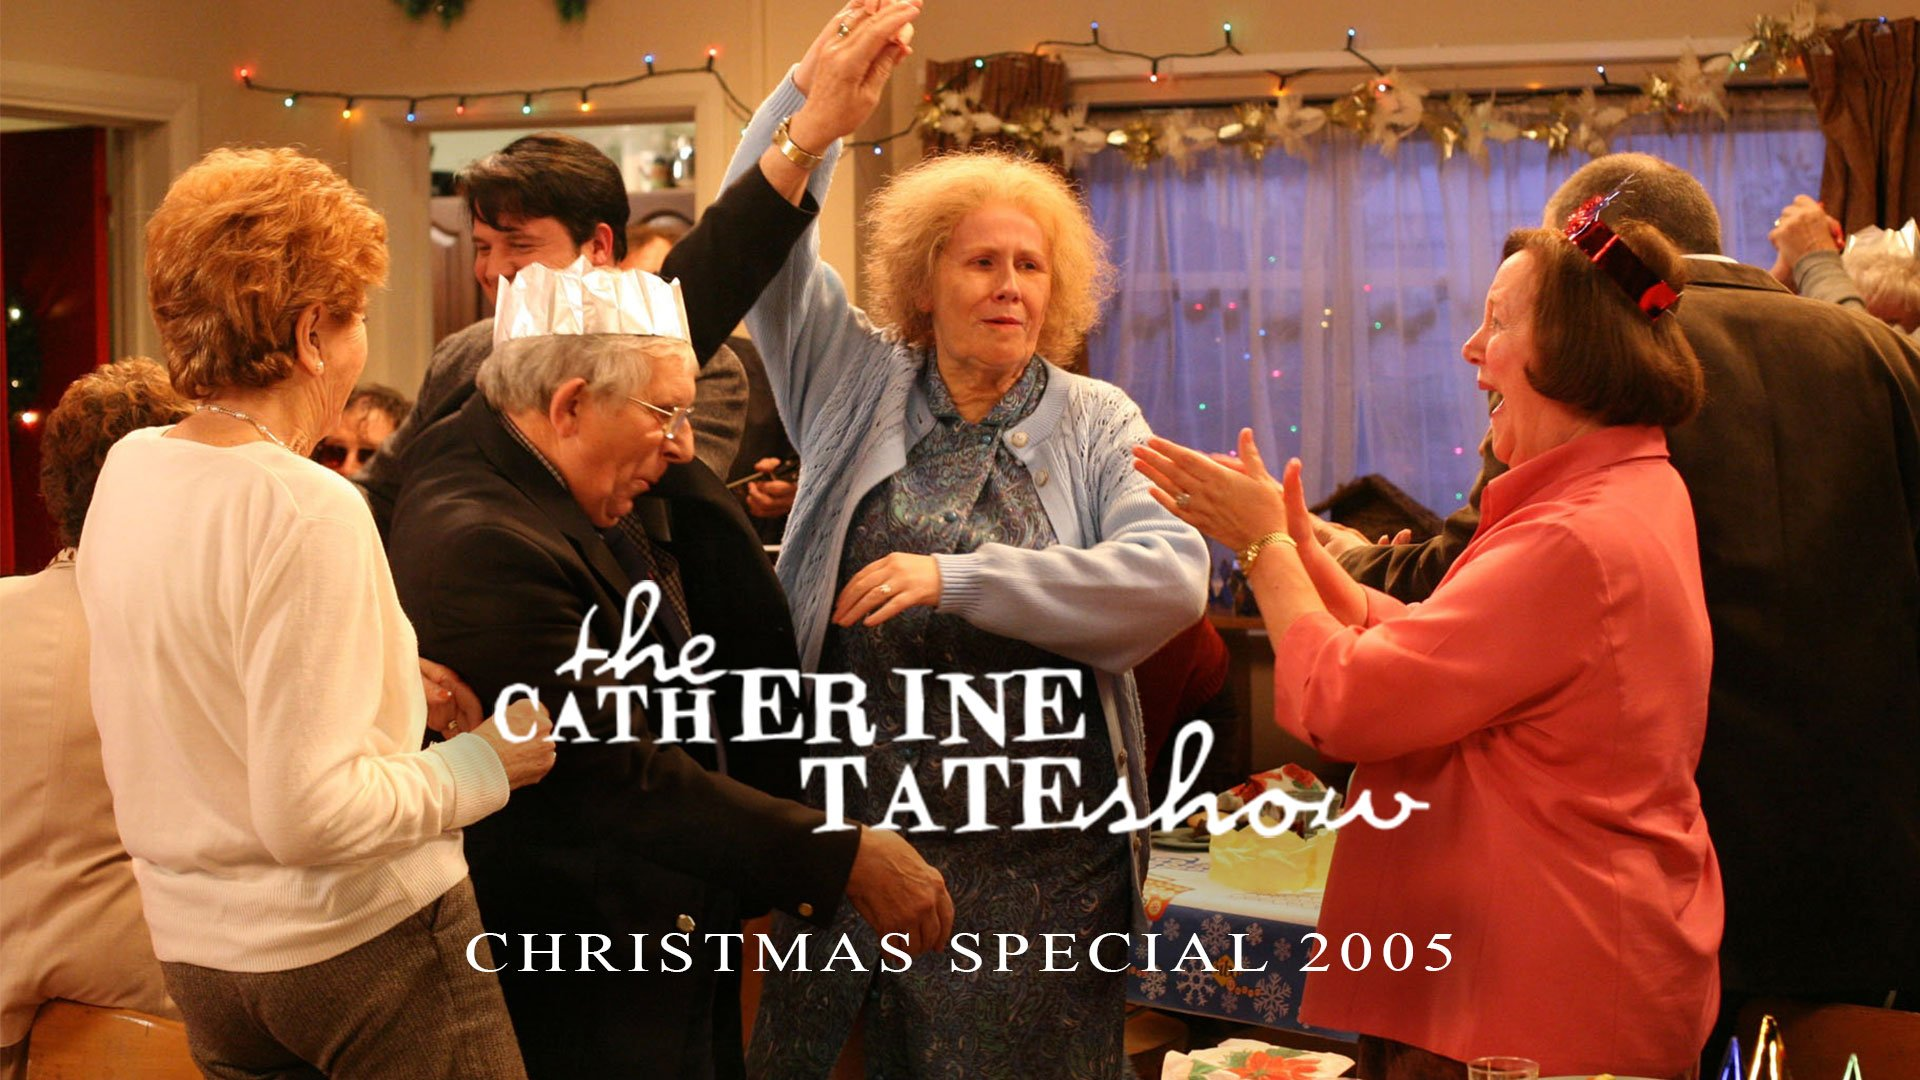 The Catherine Tate Show Christmas Special 2005 on BritBox UK